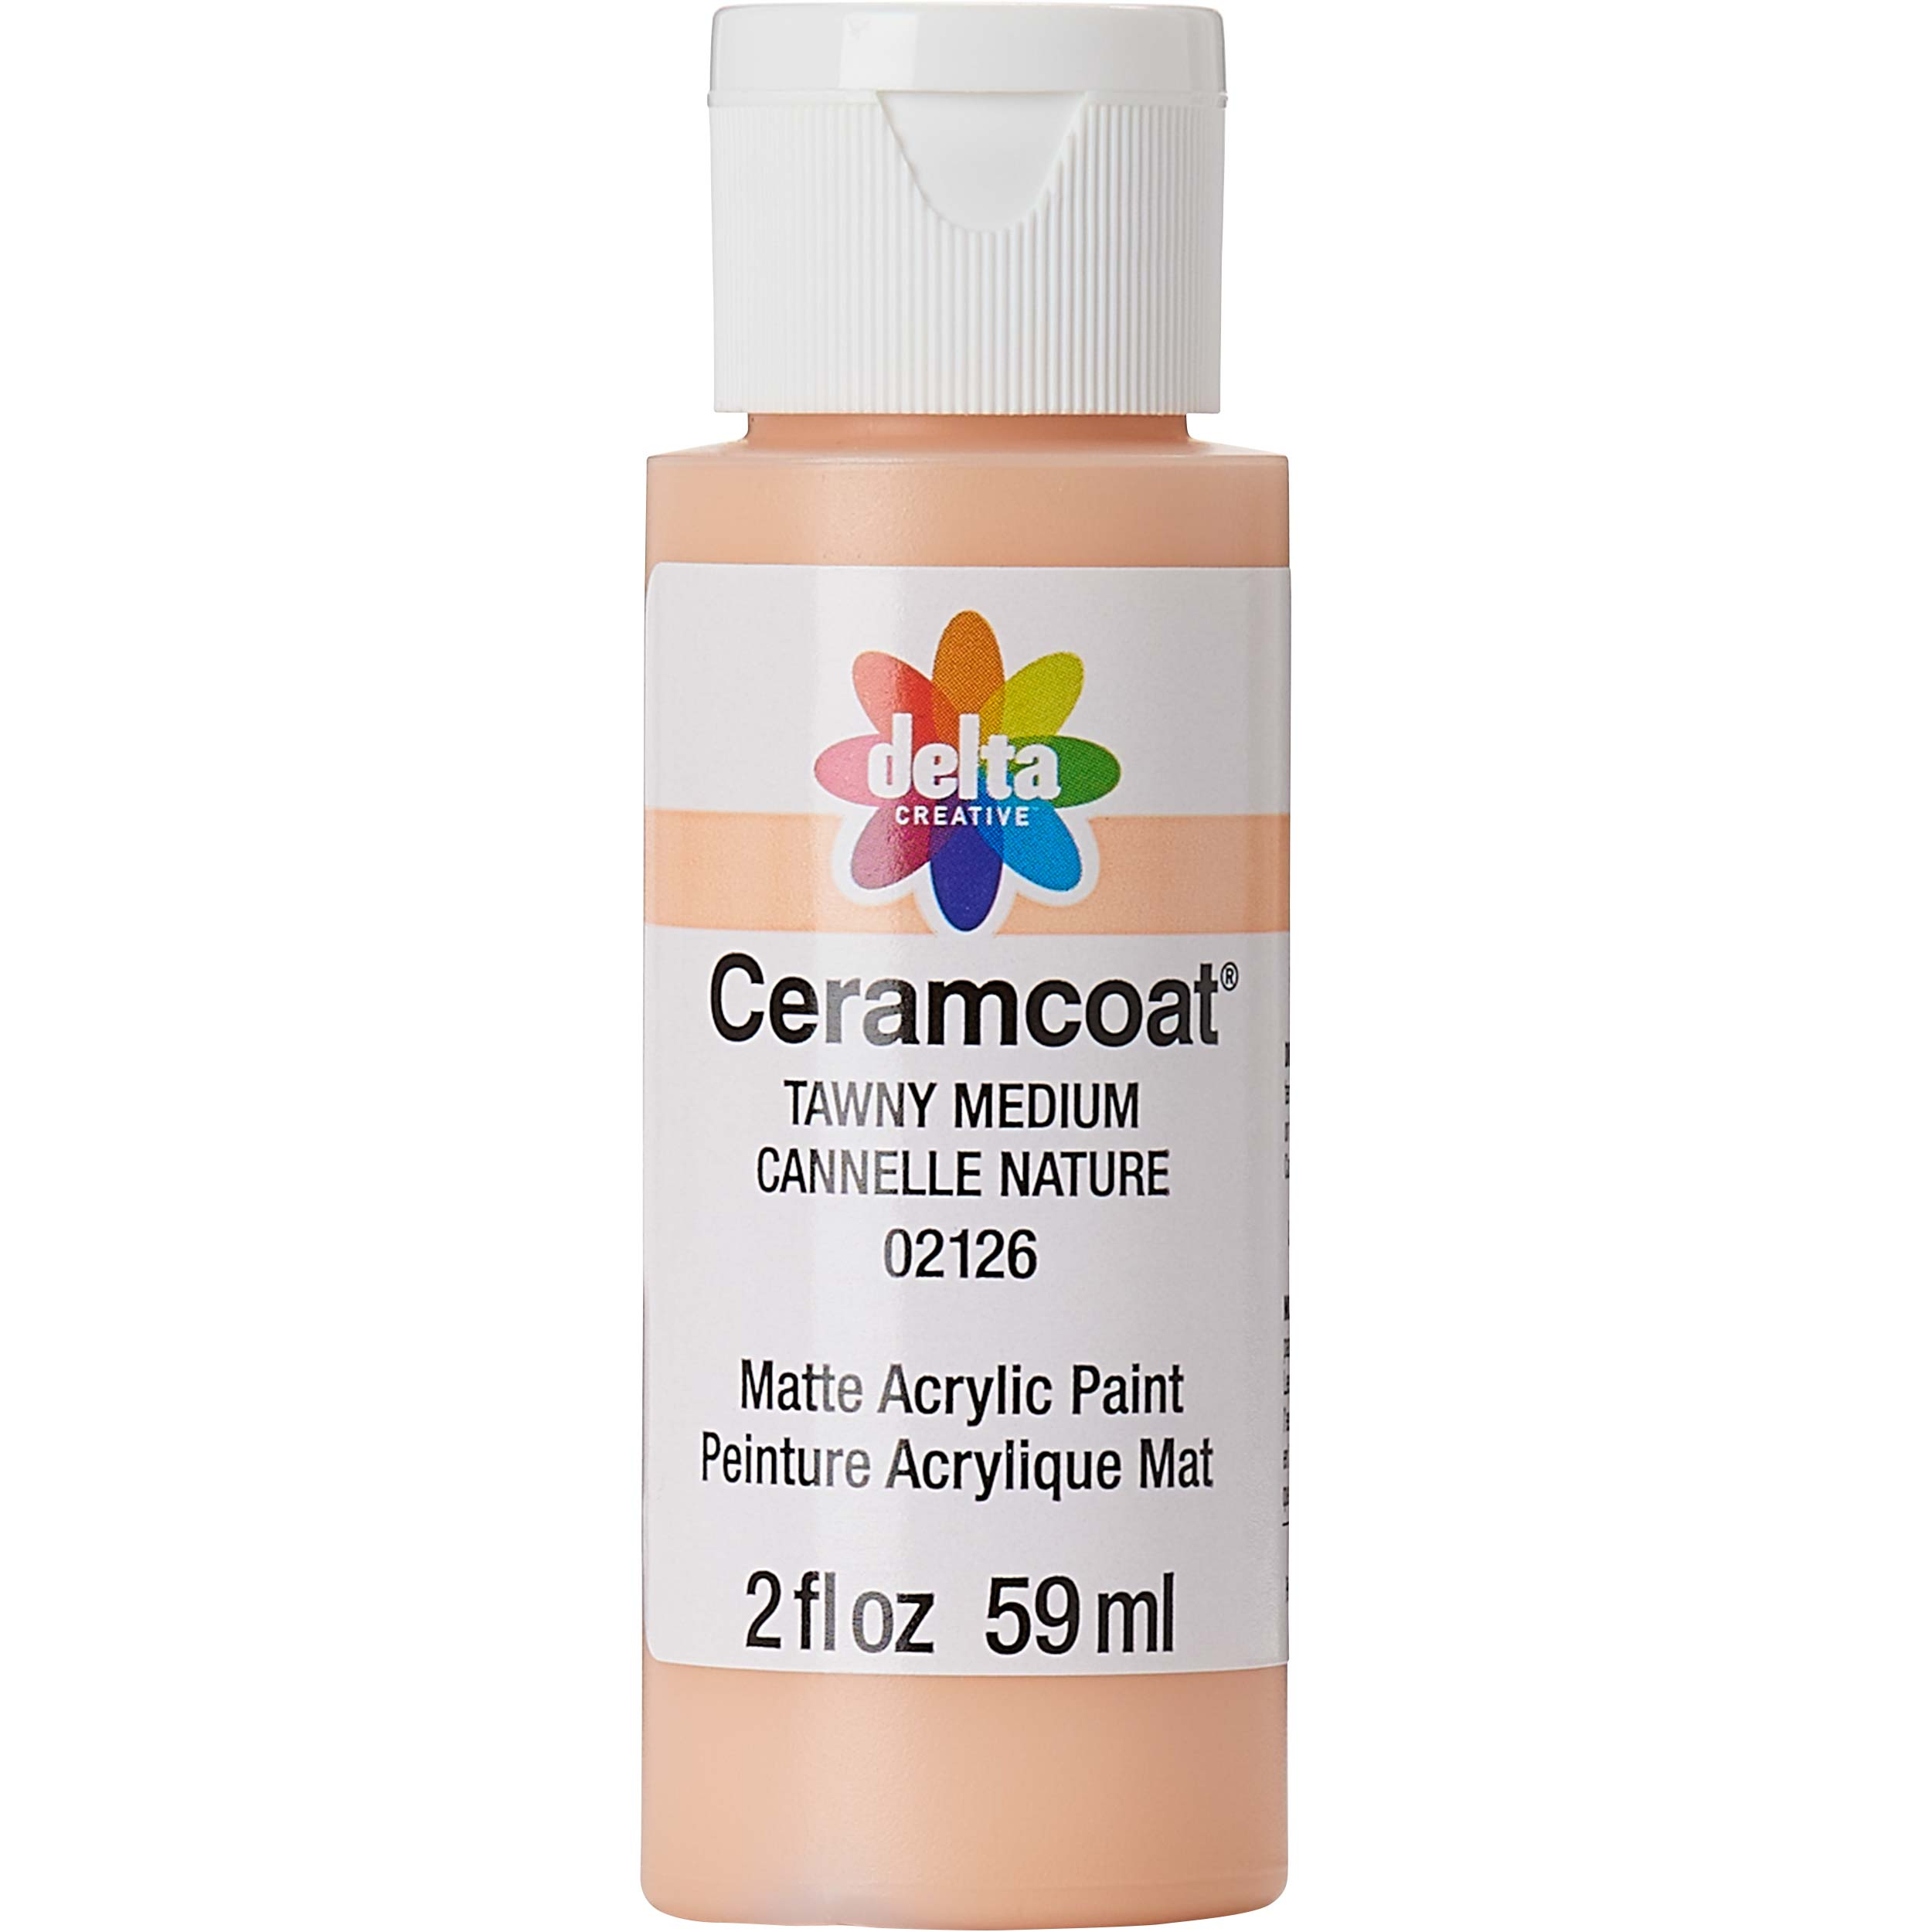 Delta Ceramcoat ® Acrylic Paint - Tawny Medium, 2 oz. - 021260202W